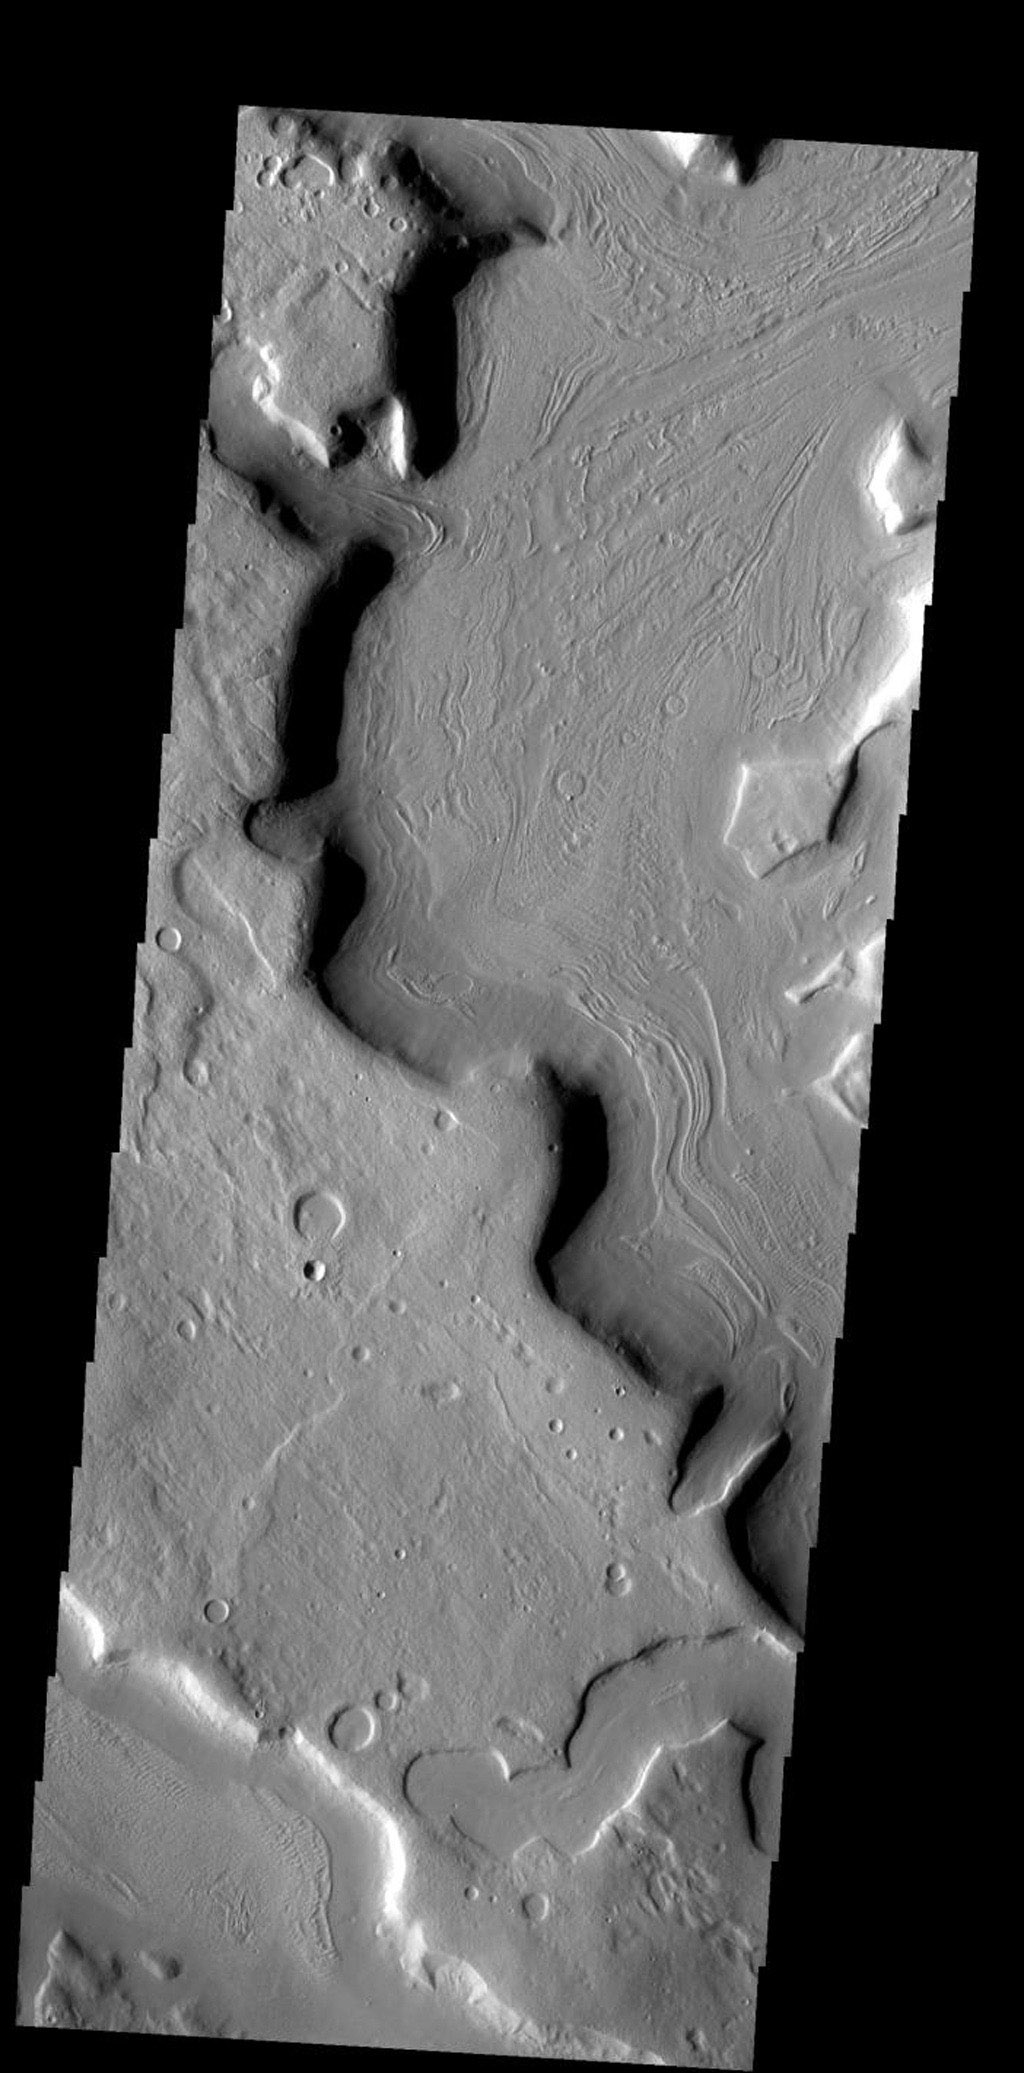 The odd pattern on the floor of this channel suggests that a volitile such as ice played a part in its formation on Mars as seen by NASA's Mars Odyssey spacecraft.